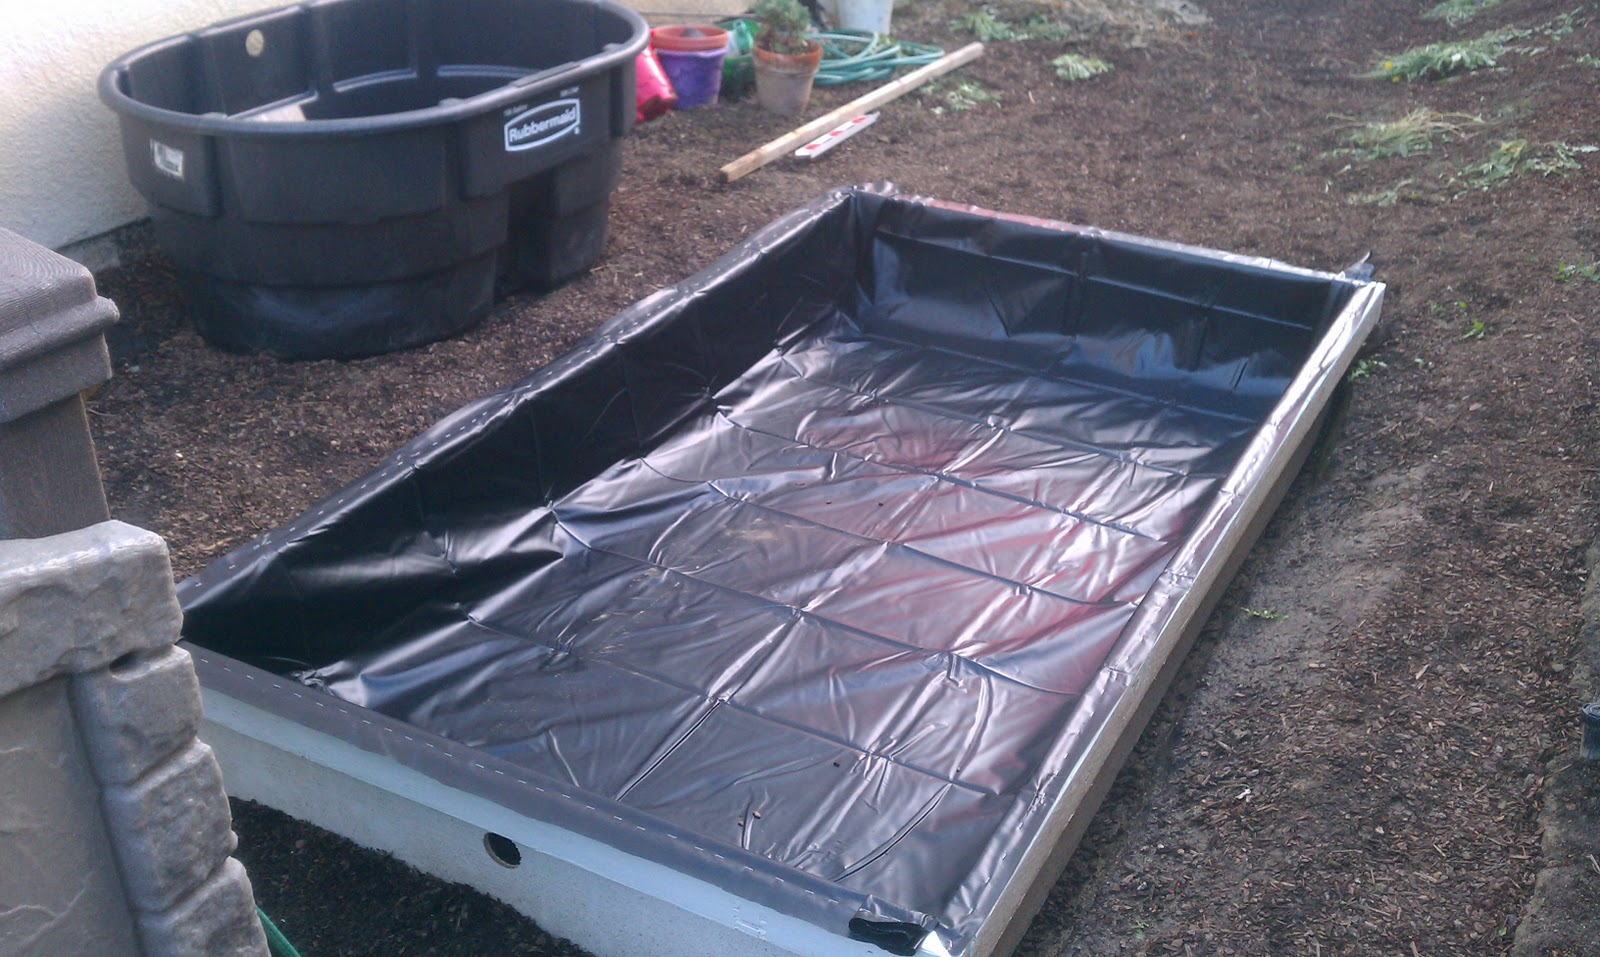 the aquaponics project the pond liner is in